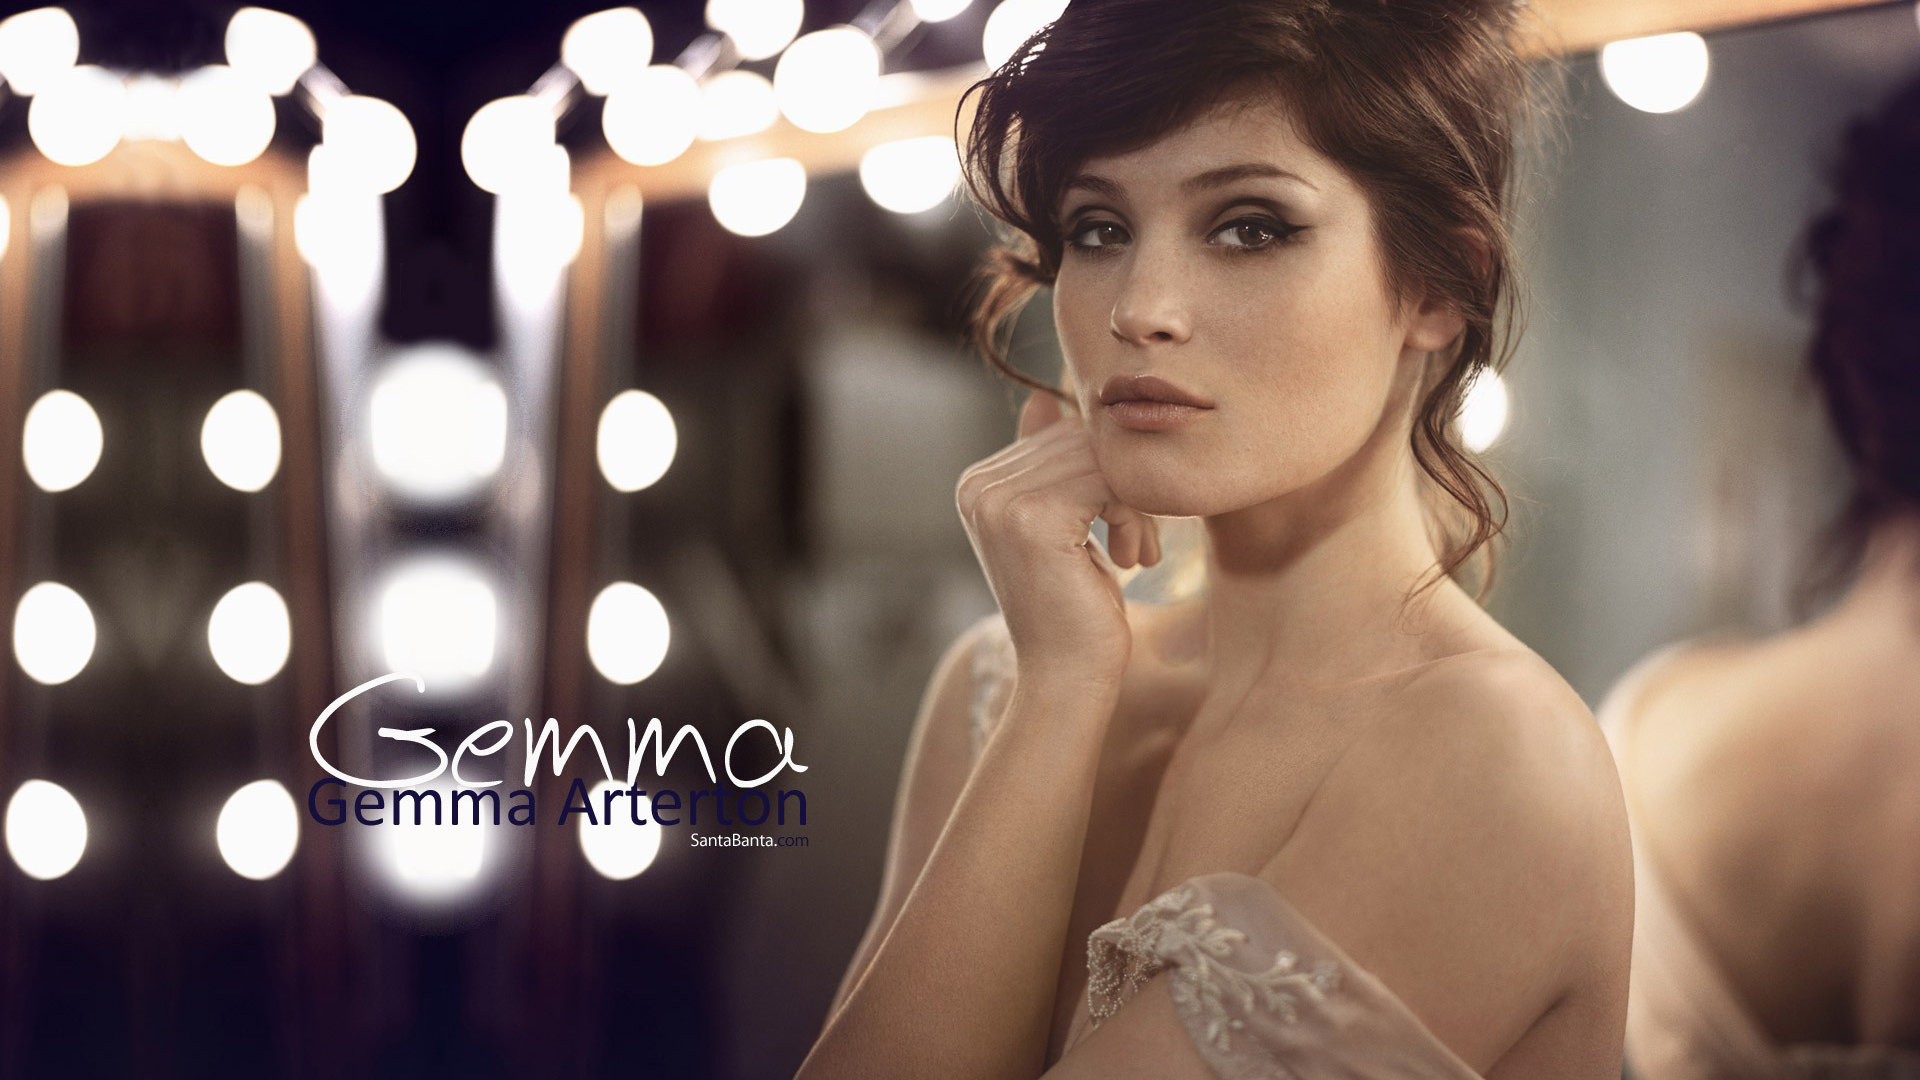 Awesome Gemma Arterton free background ID:138453 for full hd PC